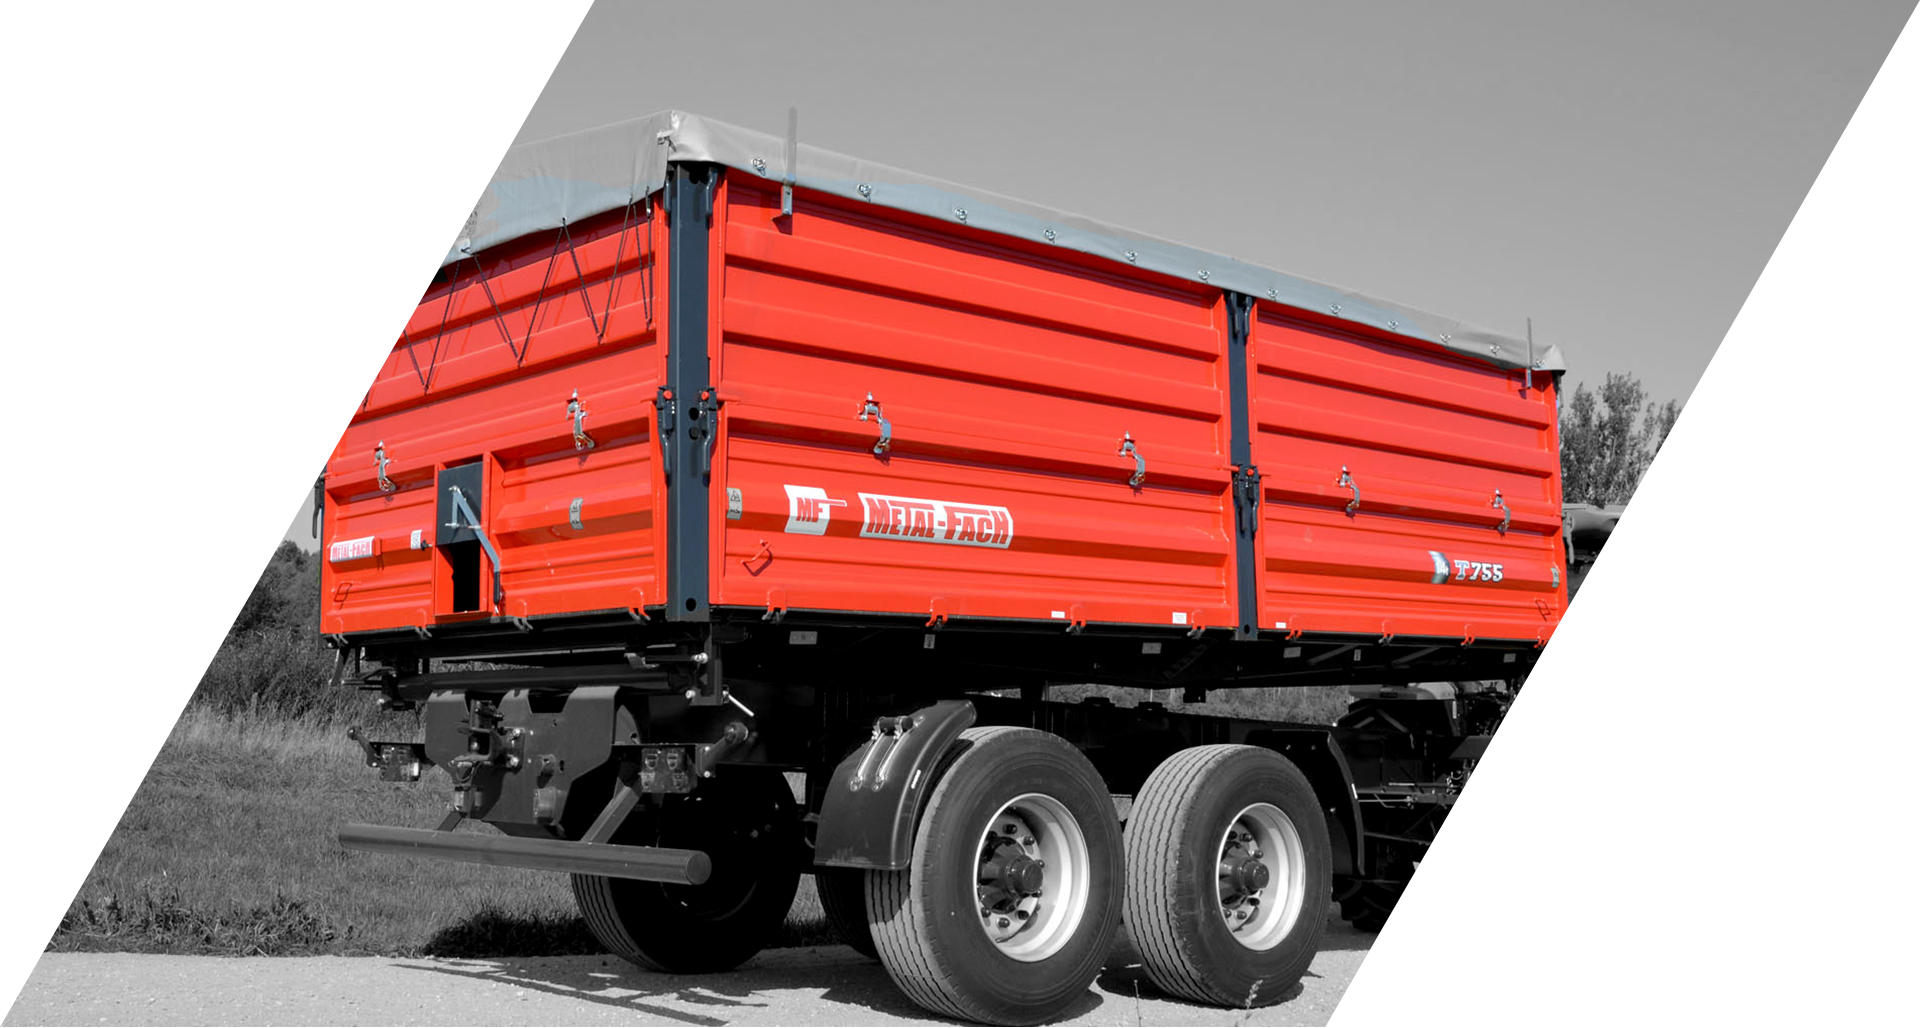 MF Agricultural trailers